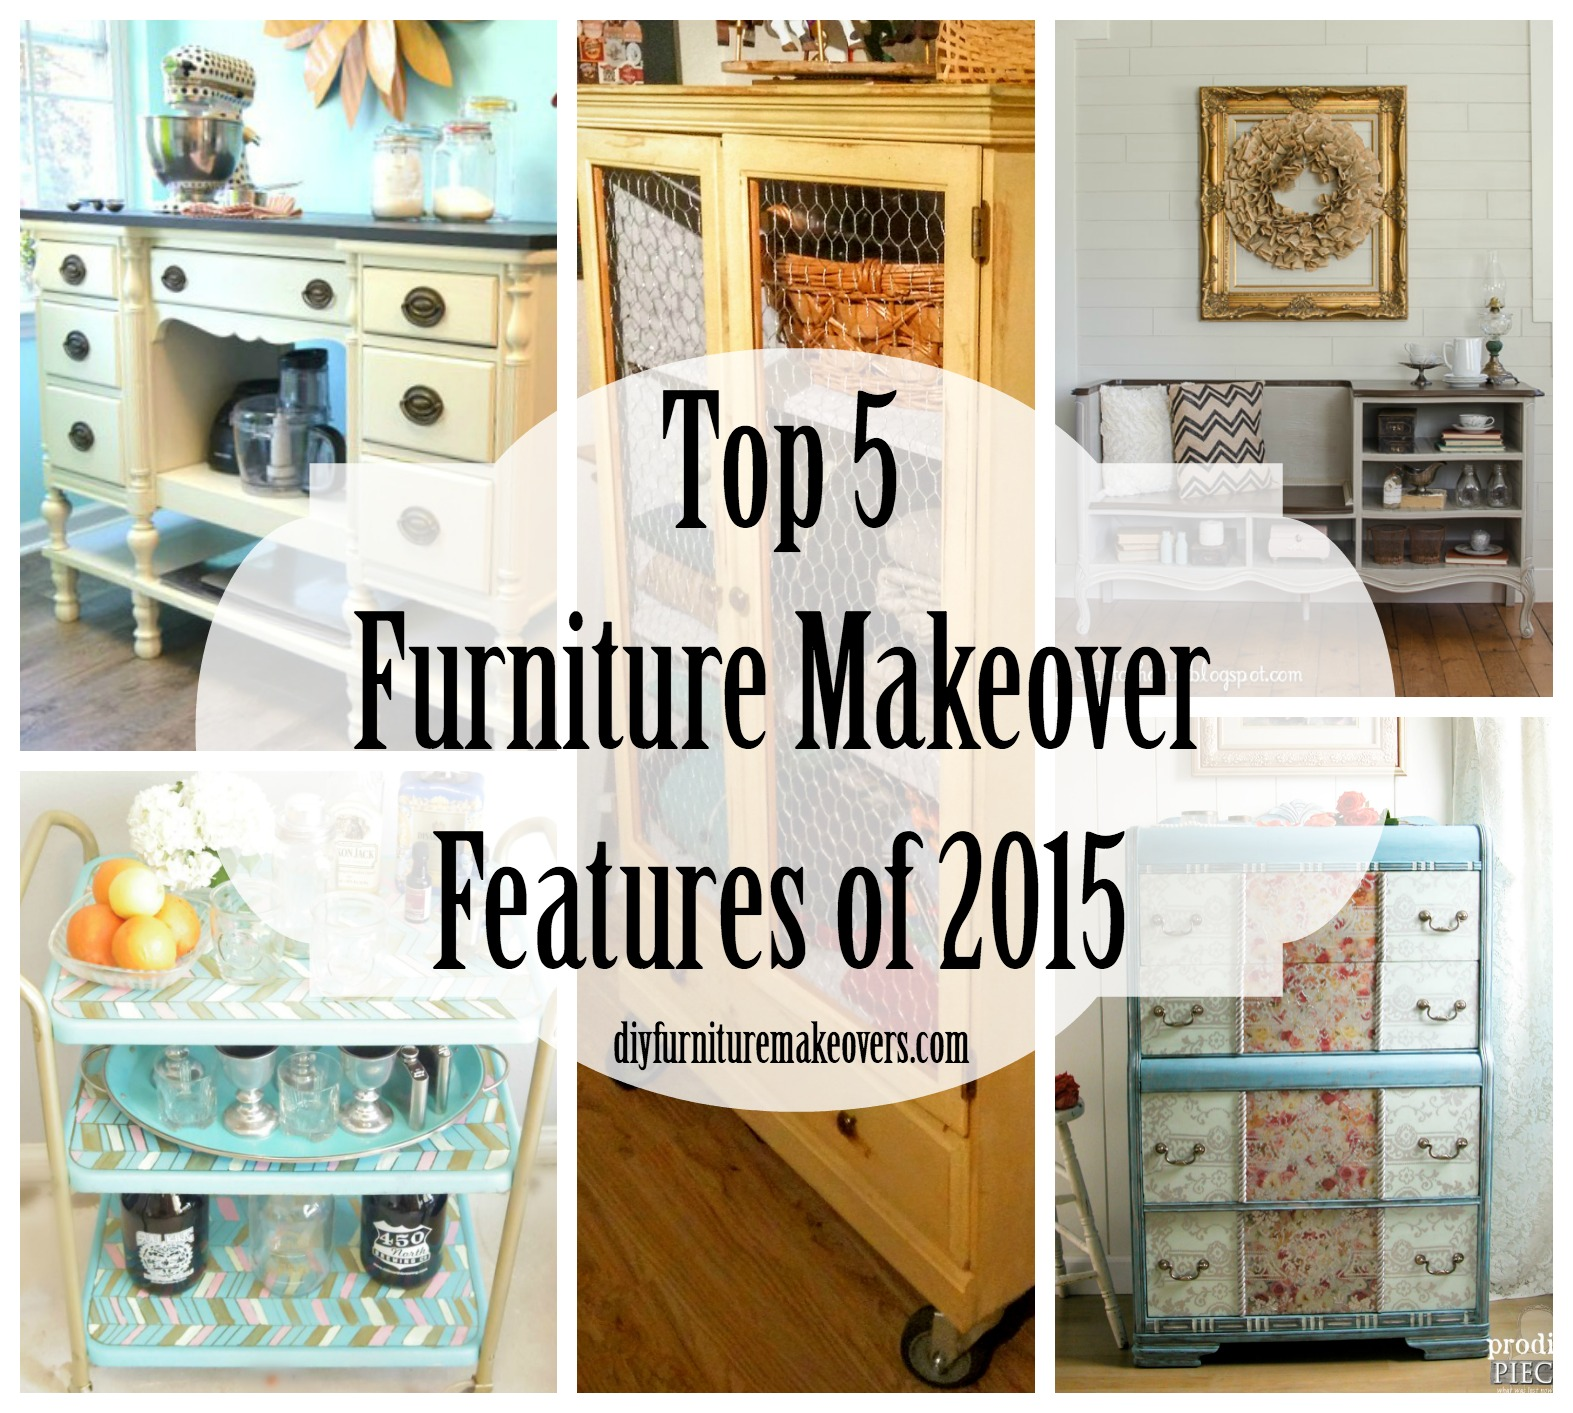 Top 5 Furniture Makeovers of 2015 - DIY Furniture Makeovers